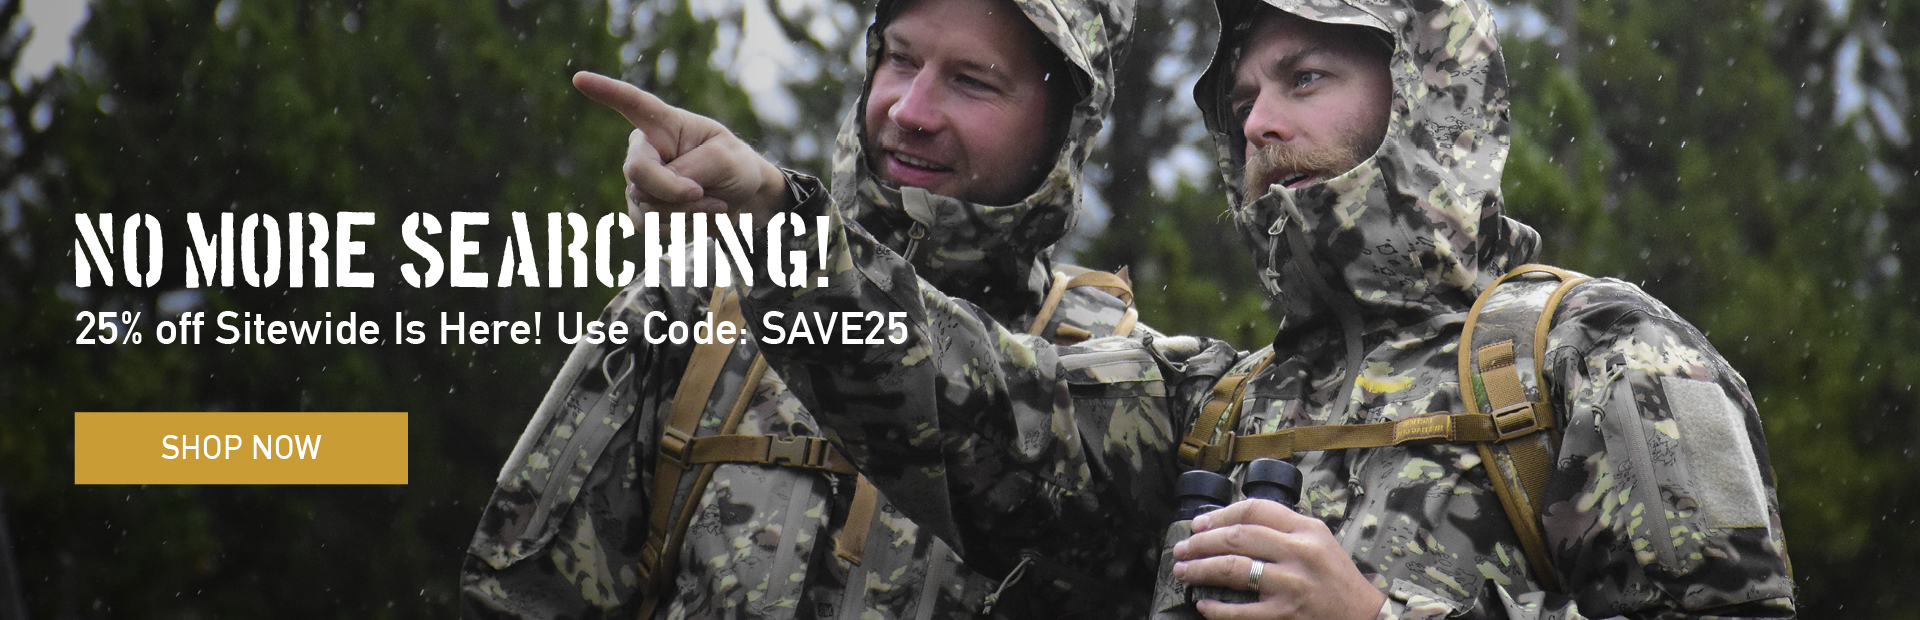 Save 25% With Code SAVE25